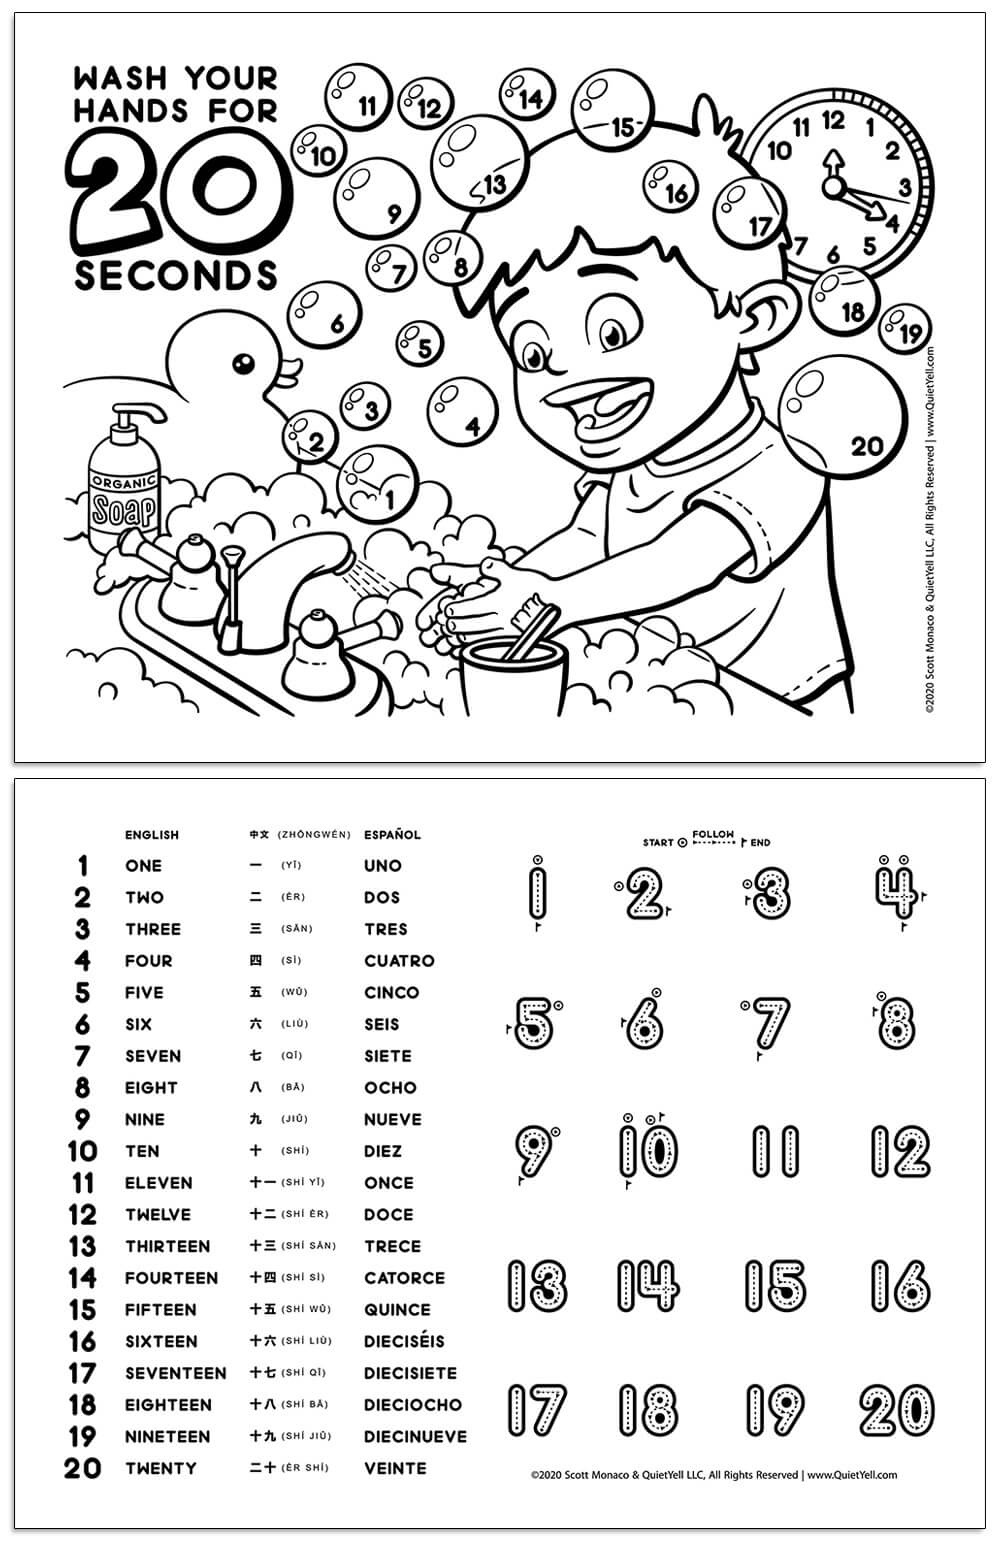 Coloring Activity Sheet to Learn About Washing Hands For 20-Seconds (Emphasized During the COVID-19 Pandemic Quarantine) and Learning Numbers in English, Chinese, and Spanish by Scott Monaco of QuietYell LLC | www.QuietYell.com